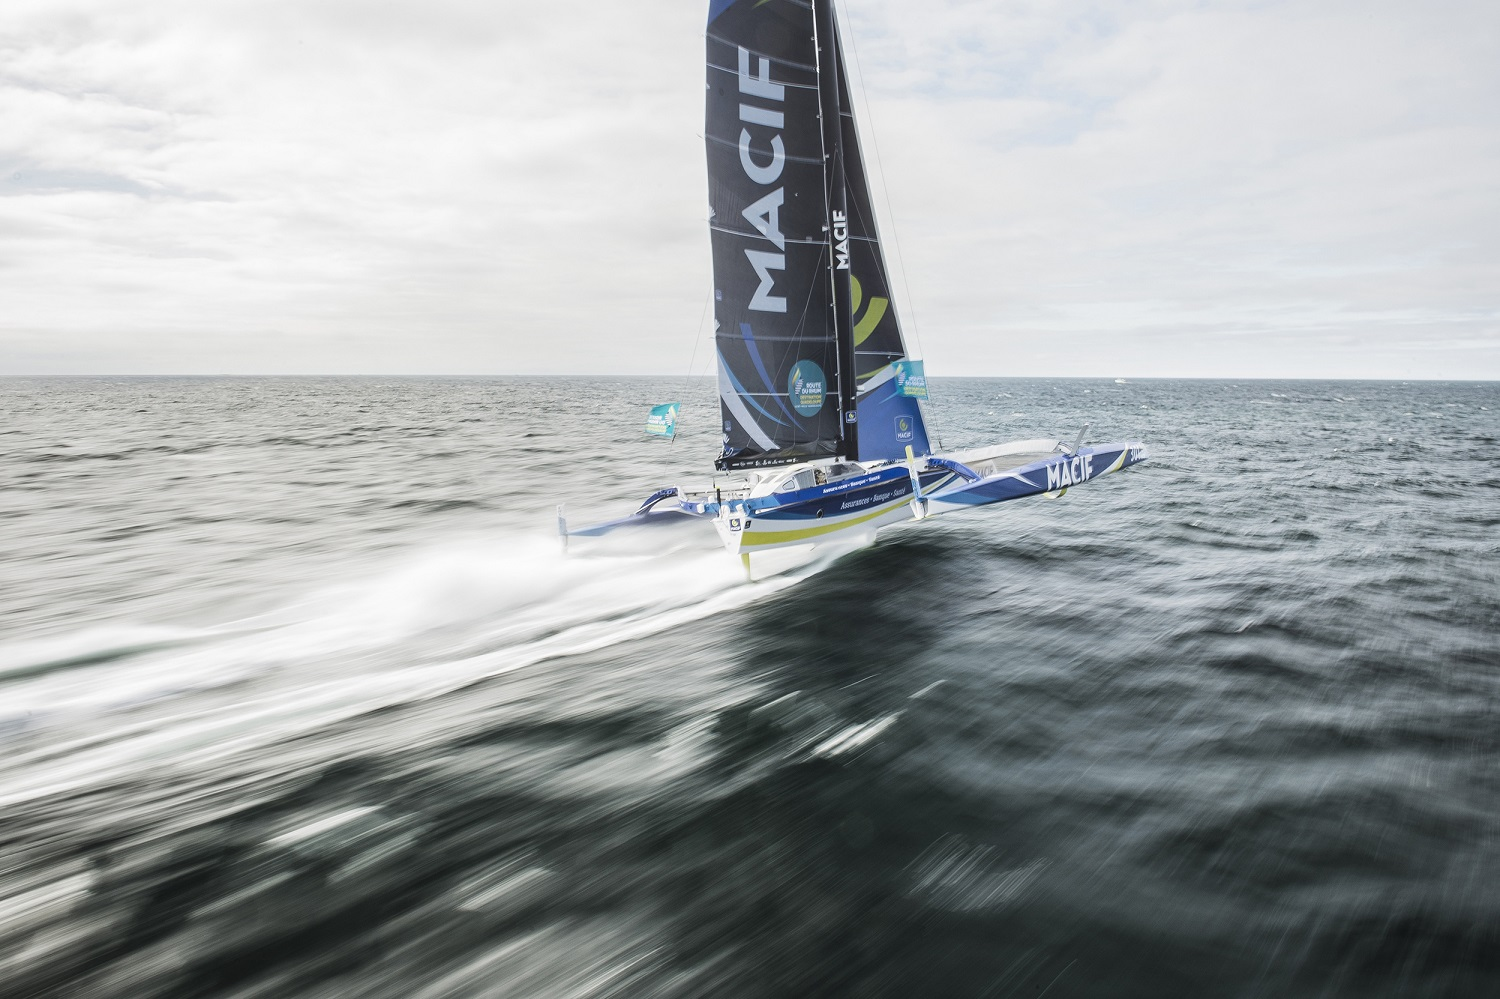 Flying - Francois Gabart's Ultime triamaran MACIF touched 49.4 knots in the Route du Rhum © Vincent Curutchet / ALéA